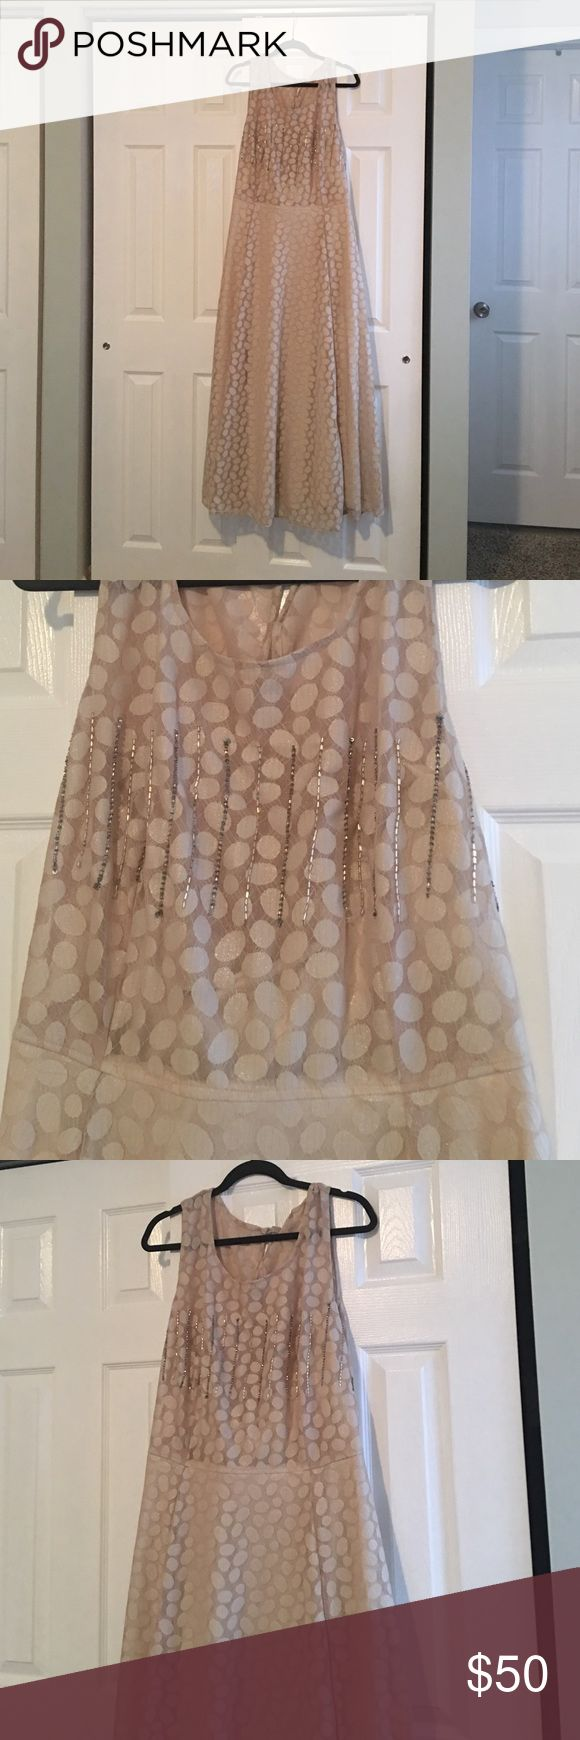 Gold/Cream Formal Dress Maxi dress with beautiful detail - brand new with tags - never worn- slight gold shimmer to fabric eshakti Dresses Maxi